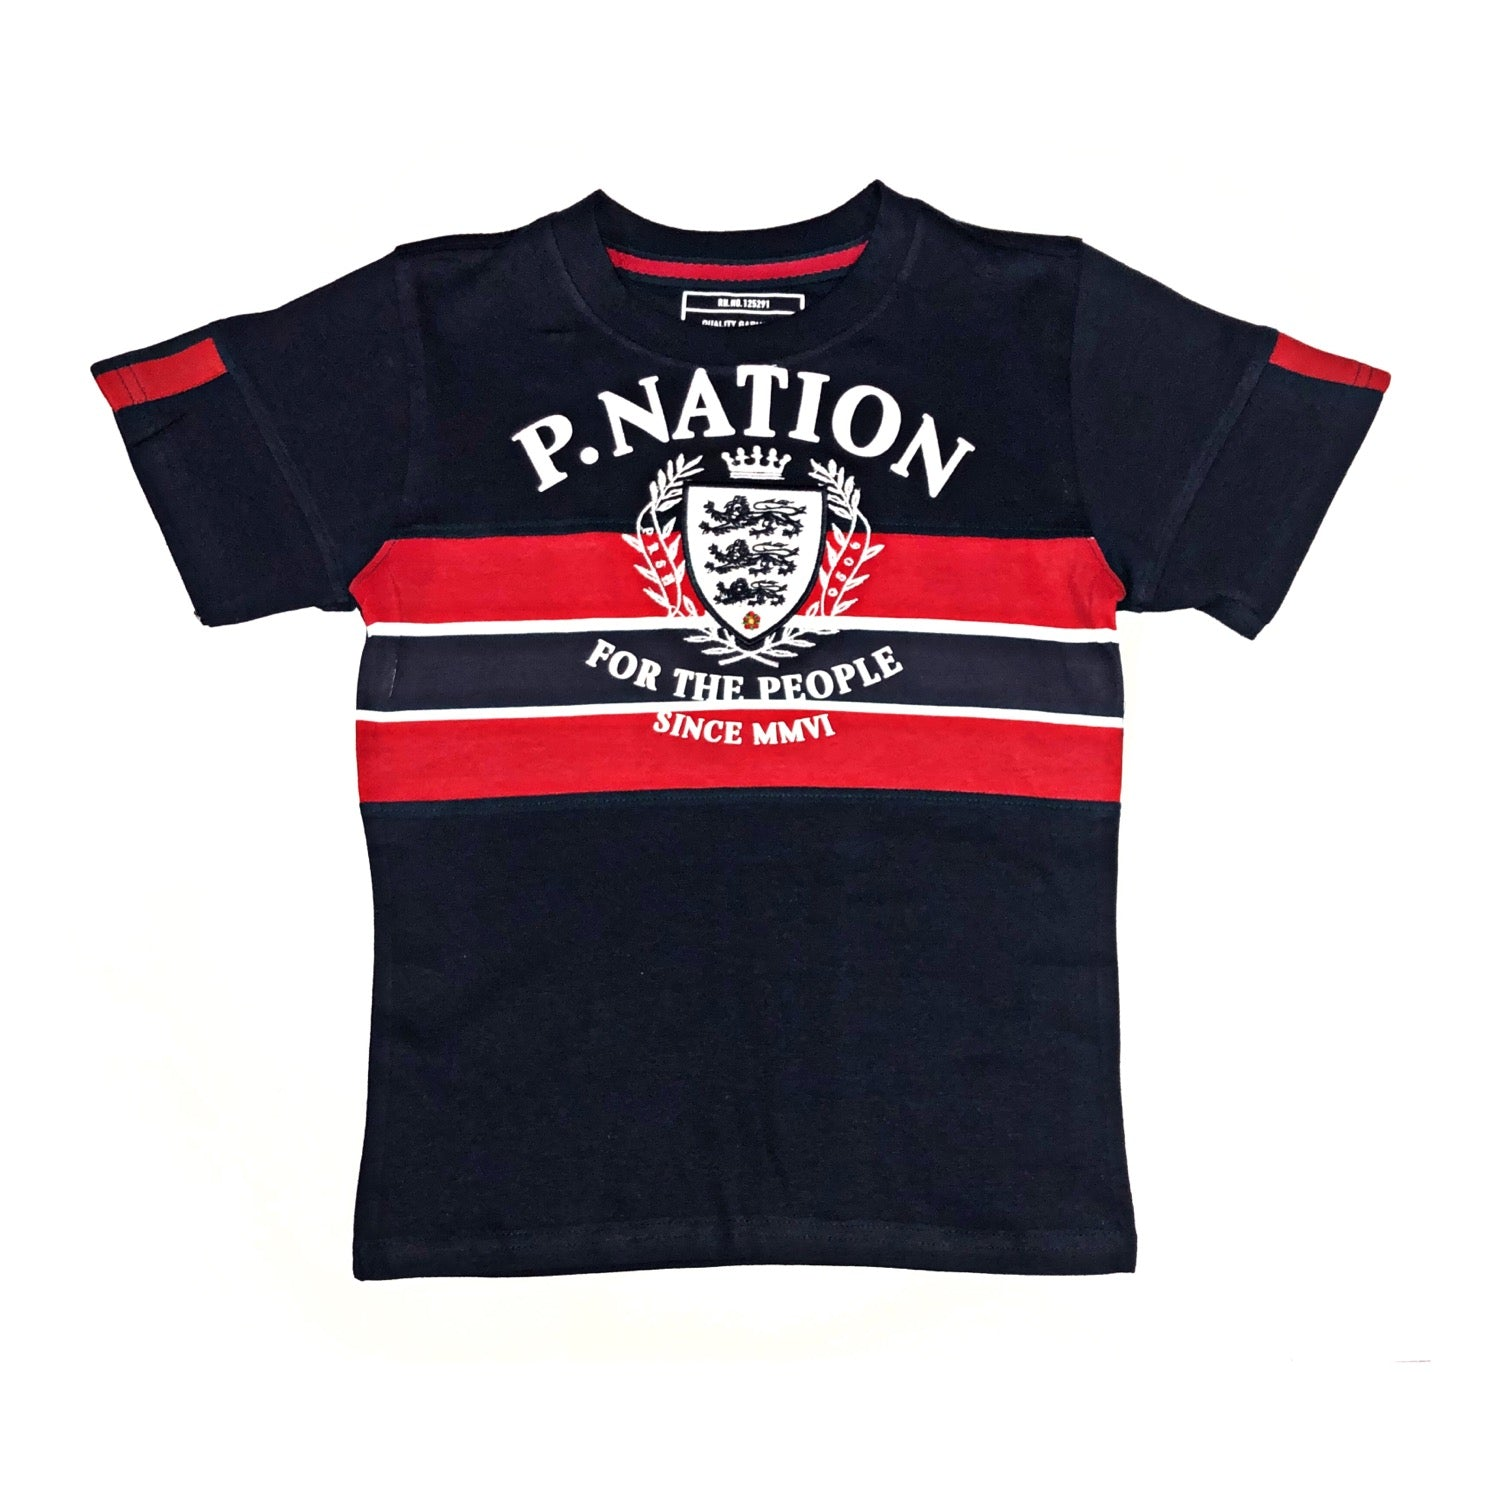 Parish Nation - For The People Graphic Top